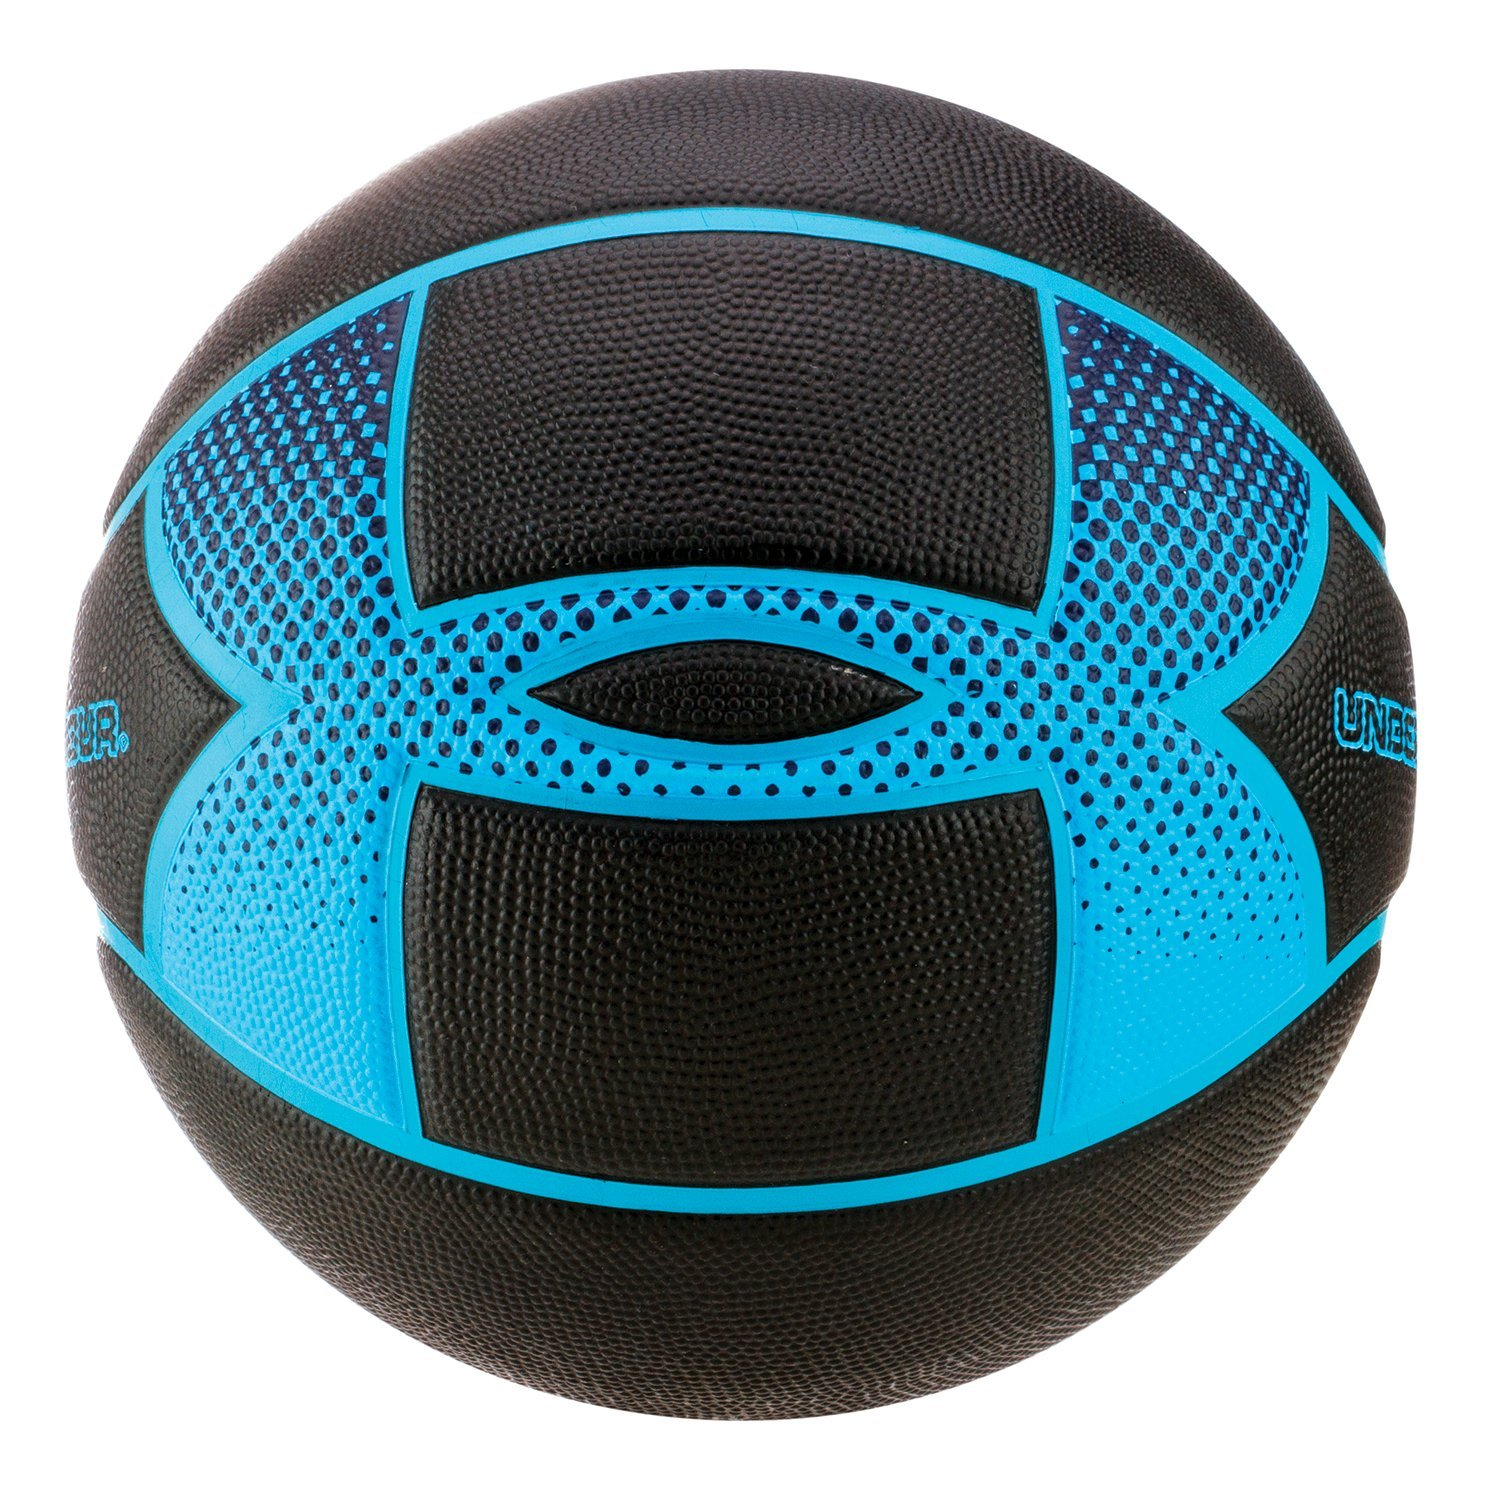 Squishy Ball Under My Skin : NEW 295 Basketball Blue/Black Under Armour Ultimate Grip Feel Dual-Density Cover eBay